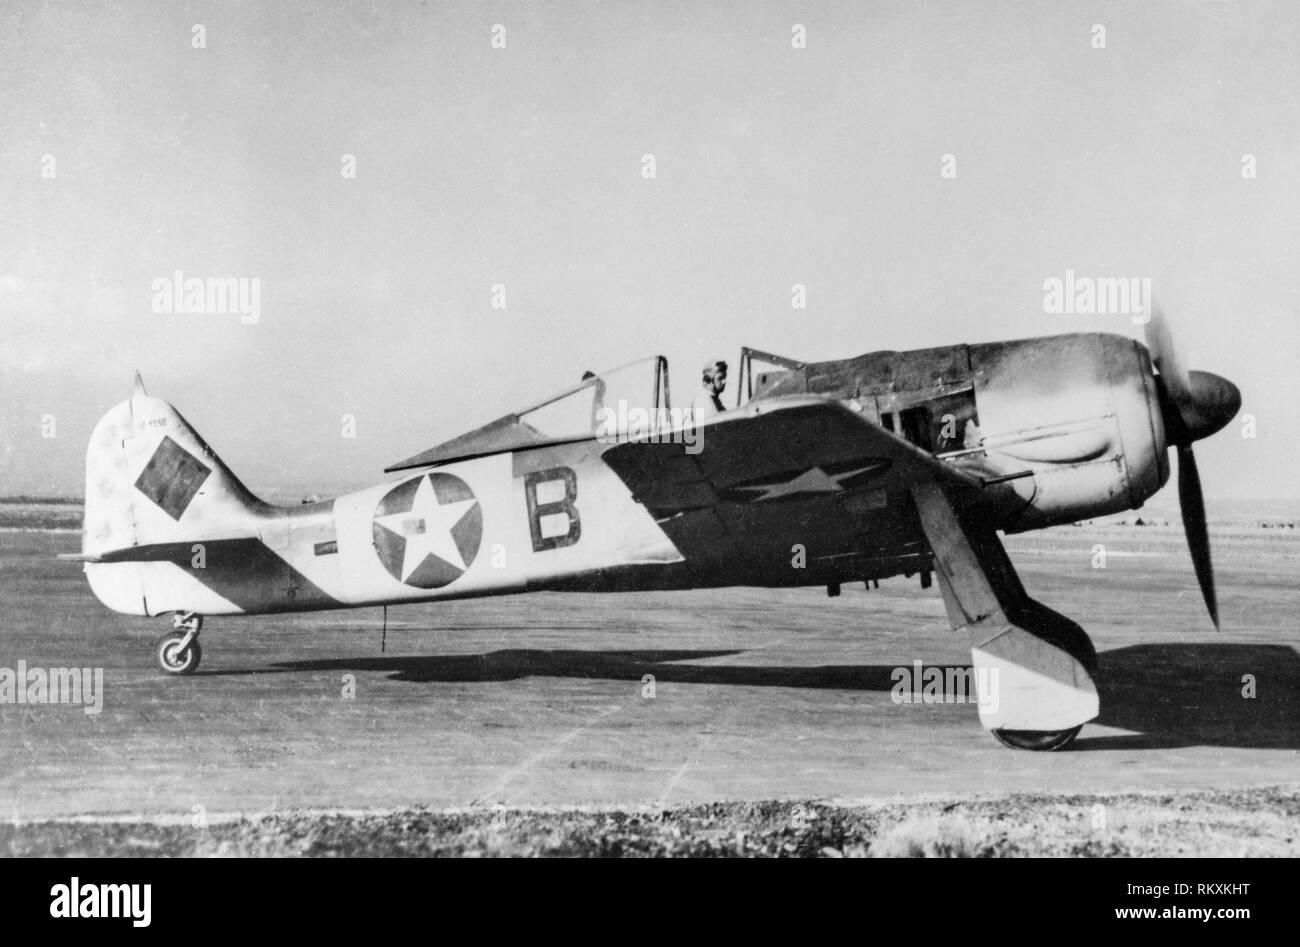 A captured German Luftwaffe Focke Wulf FW 190 in the marking of the USAAF. This aircraft originally had the Werk Number 0181550. It was captured by the Allies in North Africa and later flown by the 85th FS, 79th FG of the United States Army Air Force. - Stock Image